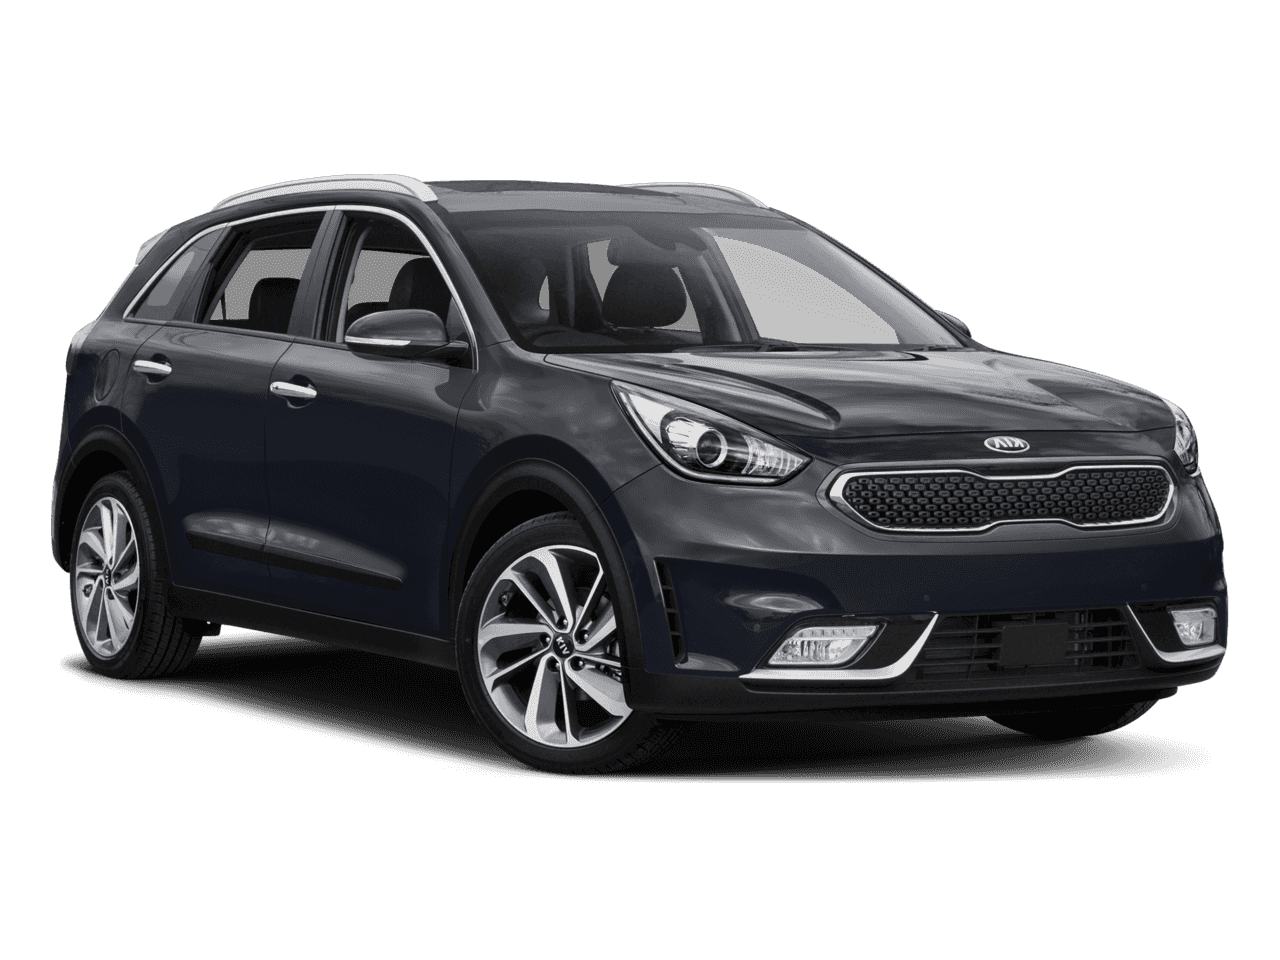 Charming New 2018 Kia Niro LX